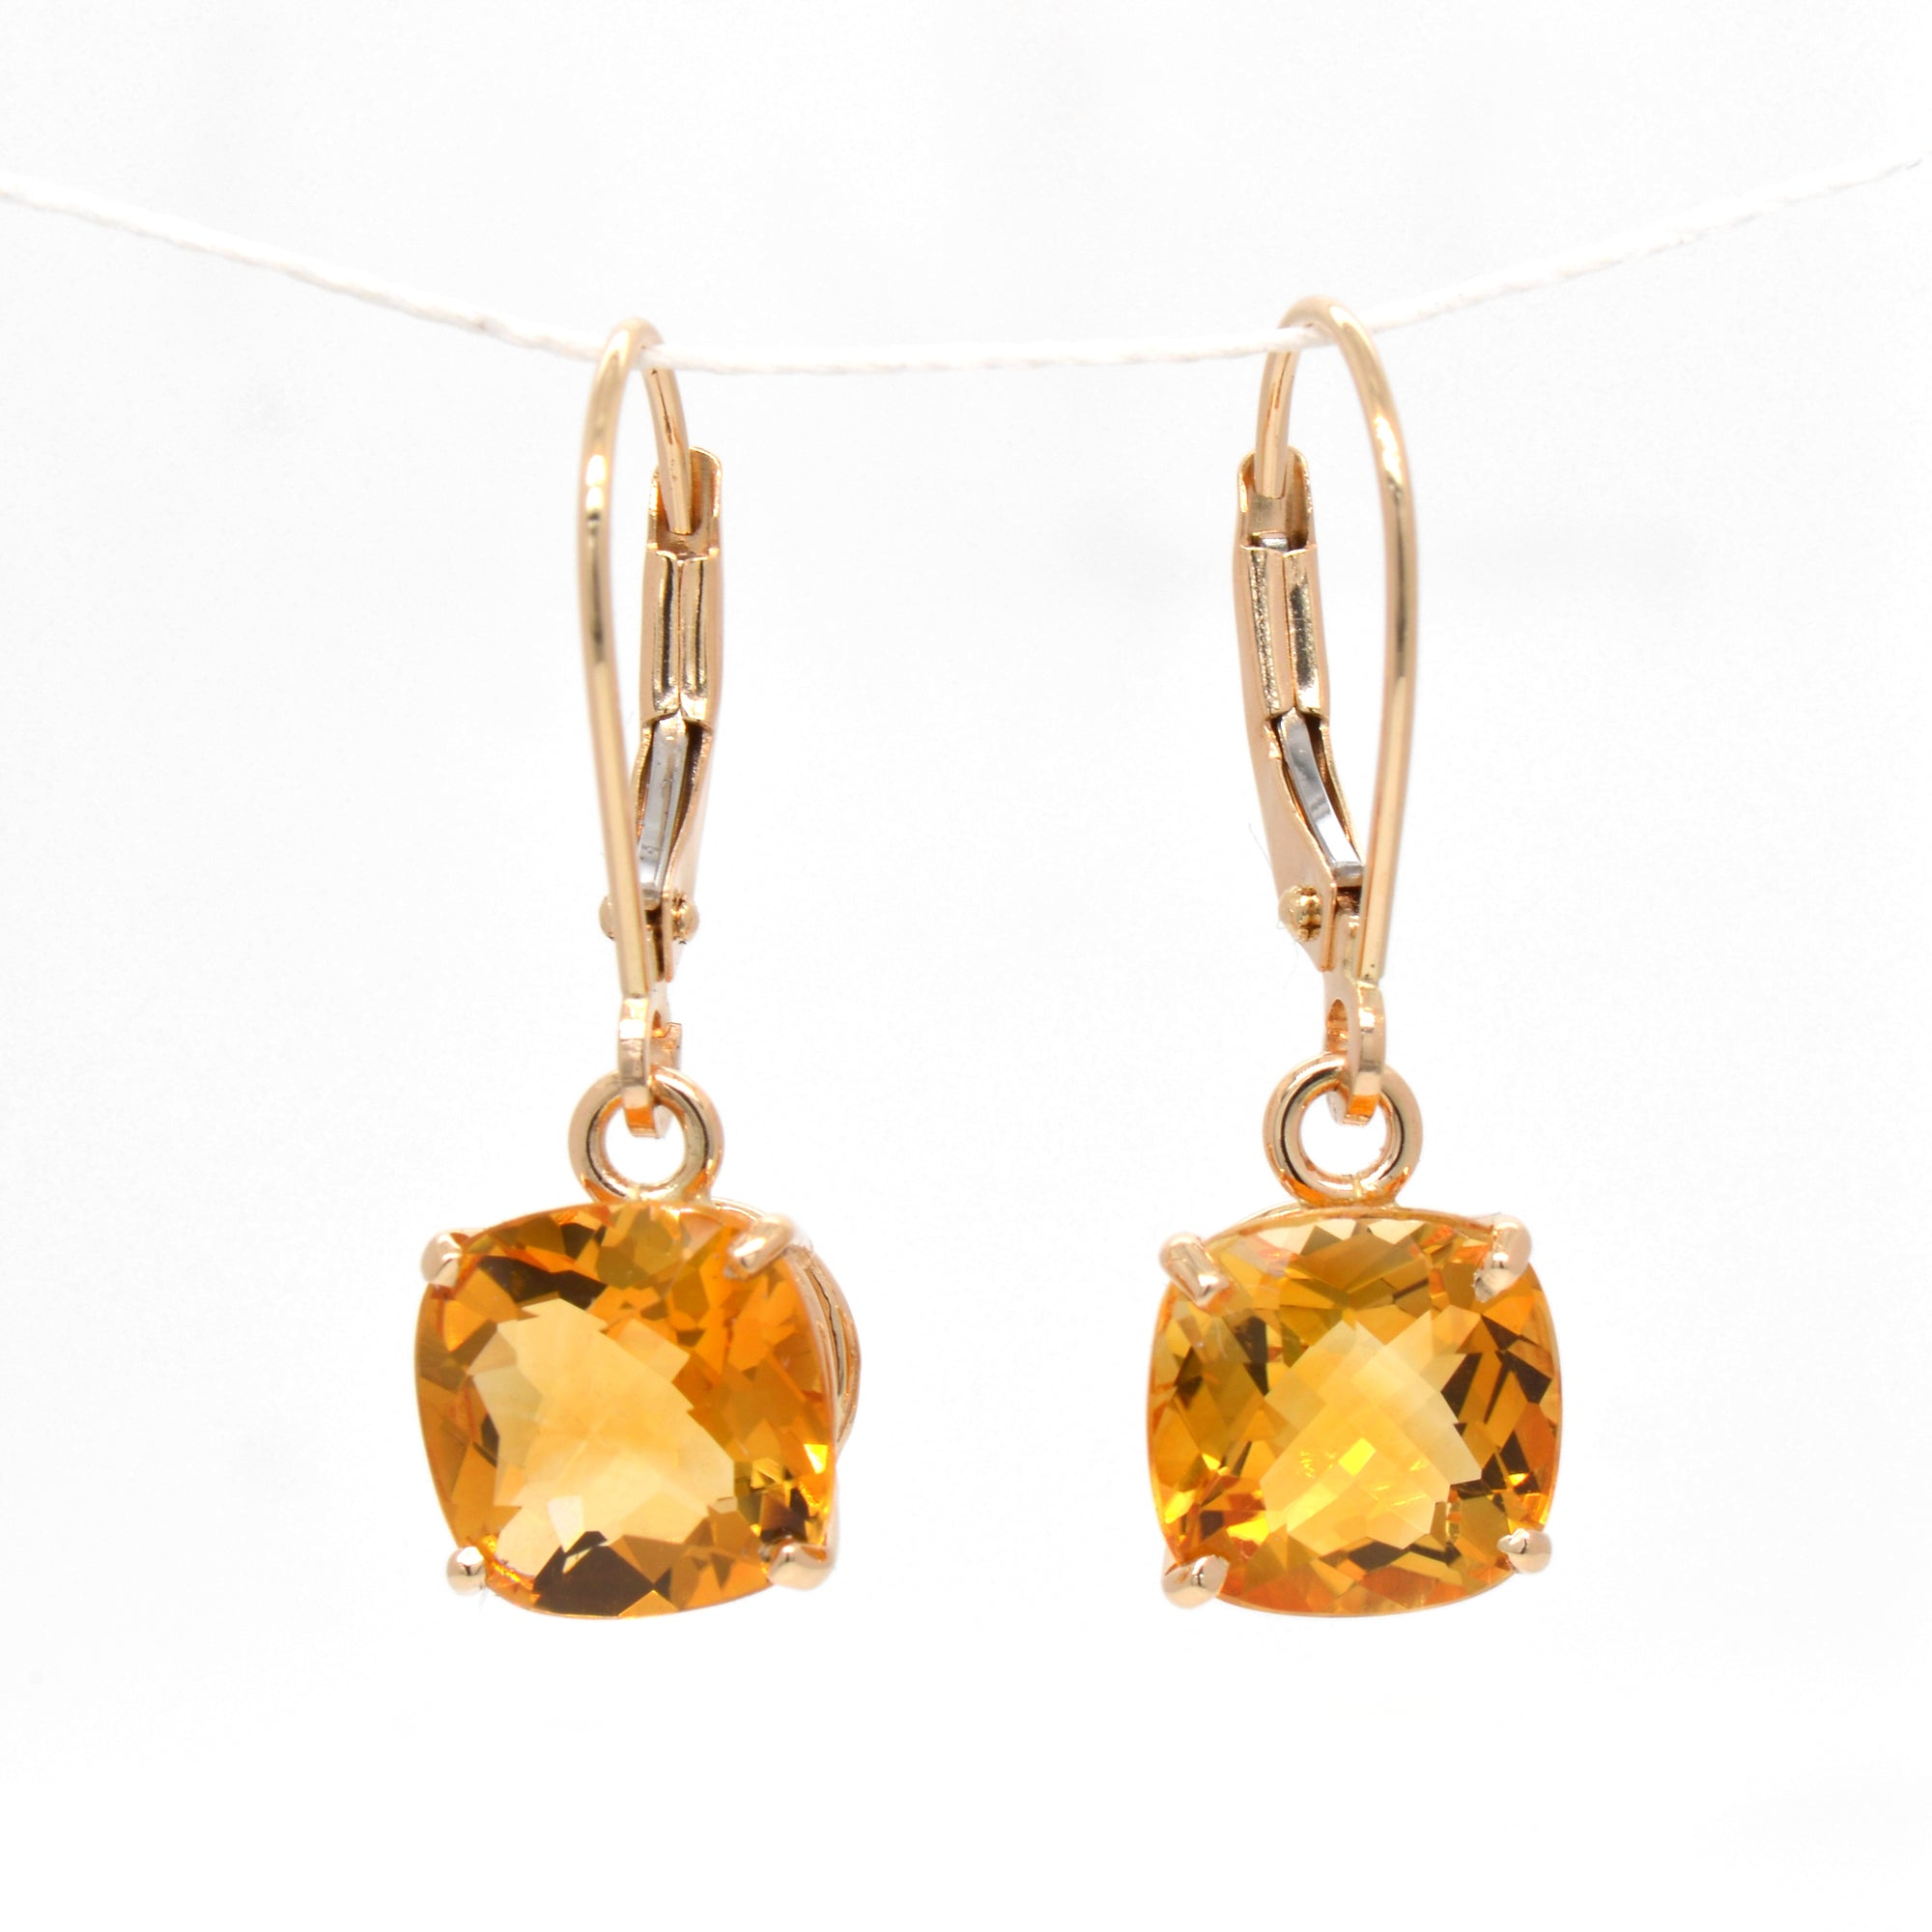 14K yellow gold citrine earrings featuring 2 golden yellow-orange cushion-shaped citrines measuring 8x8 mm.